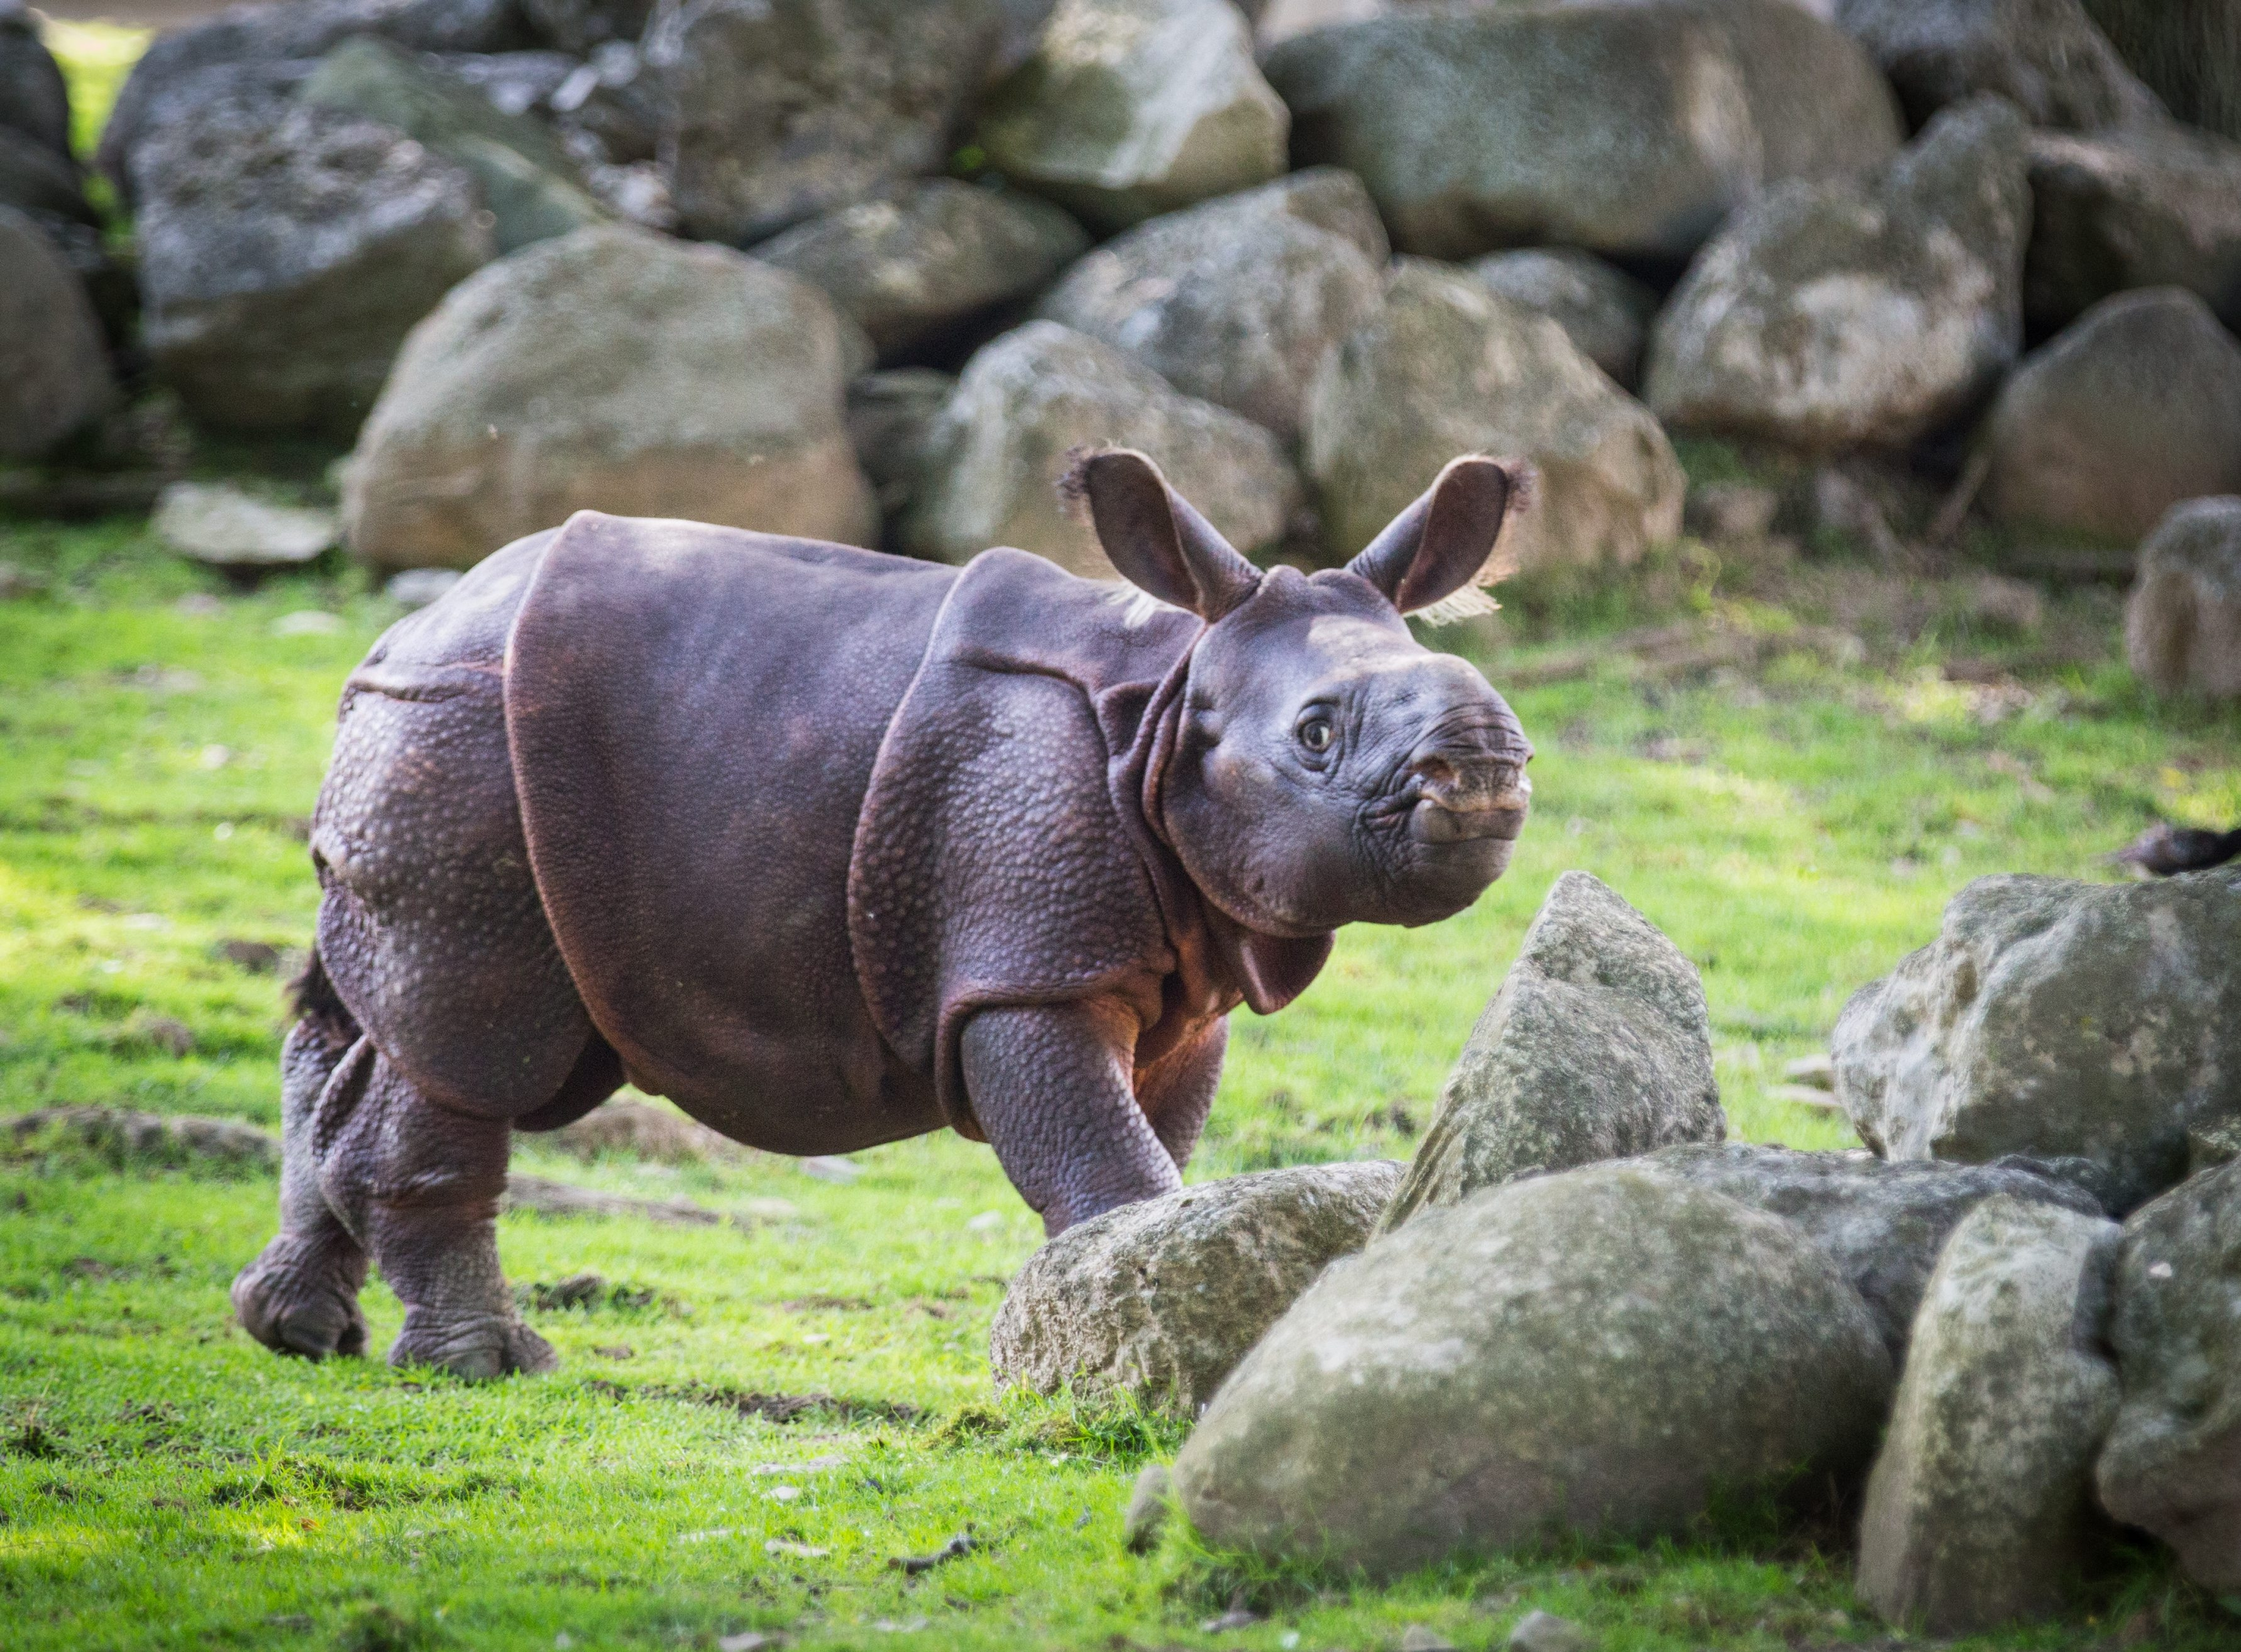 Monica, the baby Indian rhino at the Buffalo Zoo, went on public view for the first time Monday morning. She's 4 weeks old, and she stayed close to her mother, Tashi, during their outing.